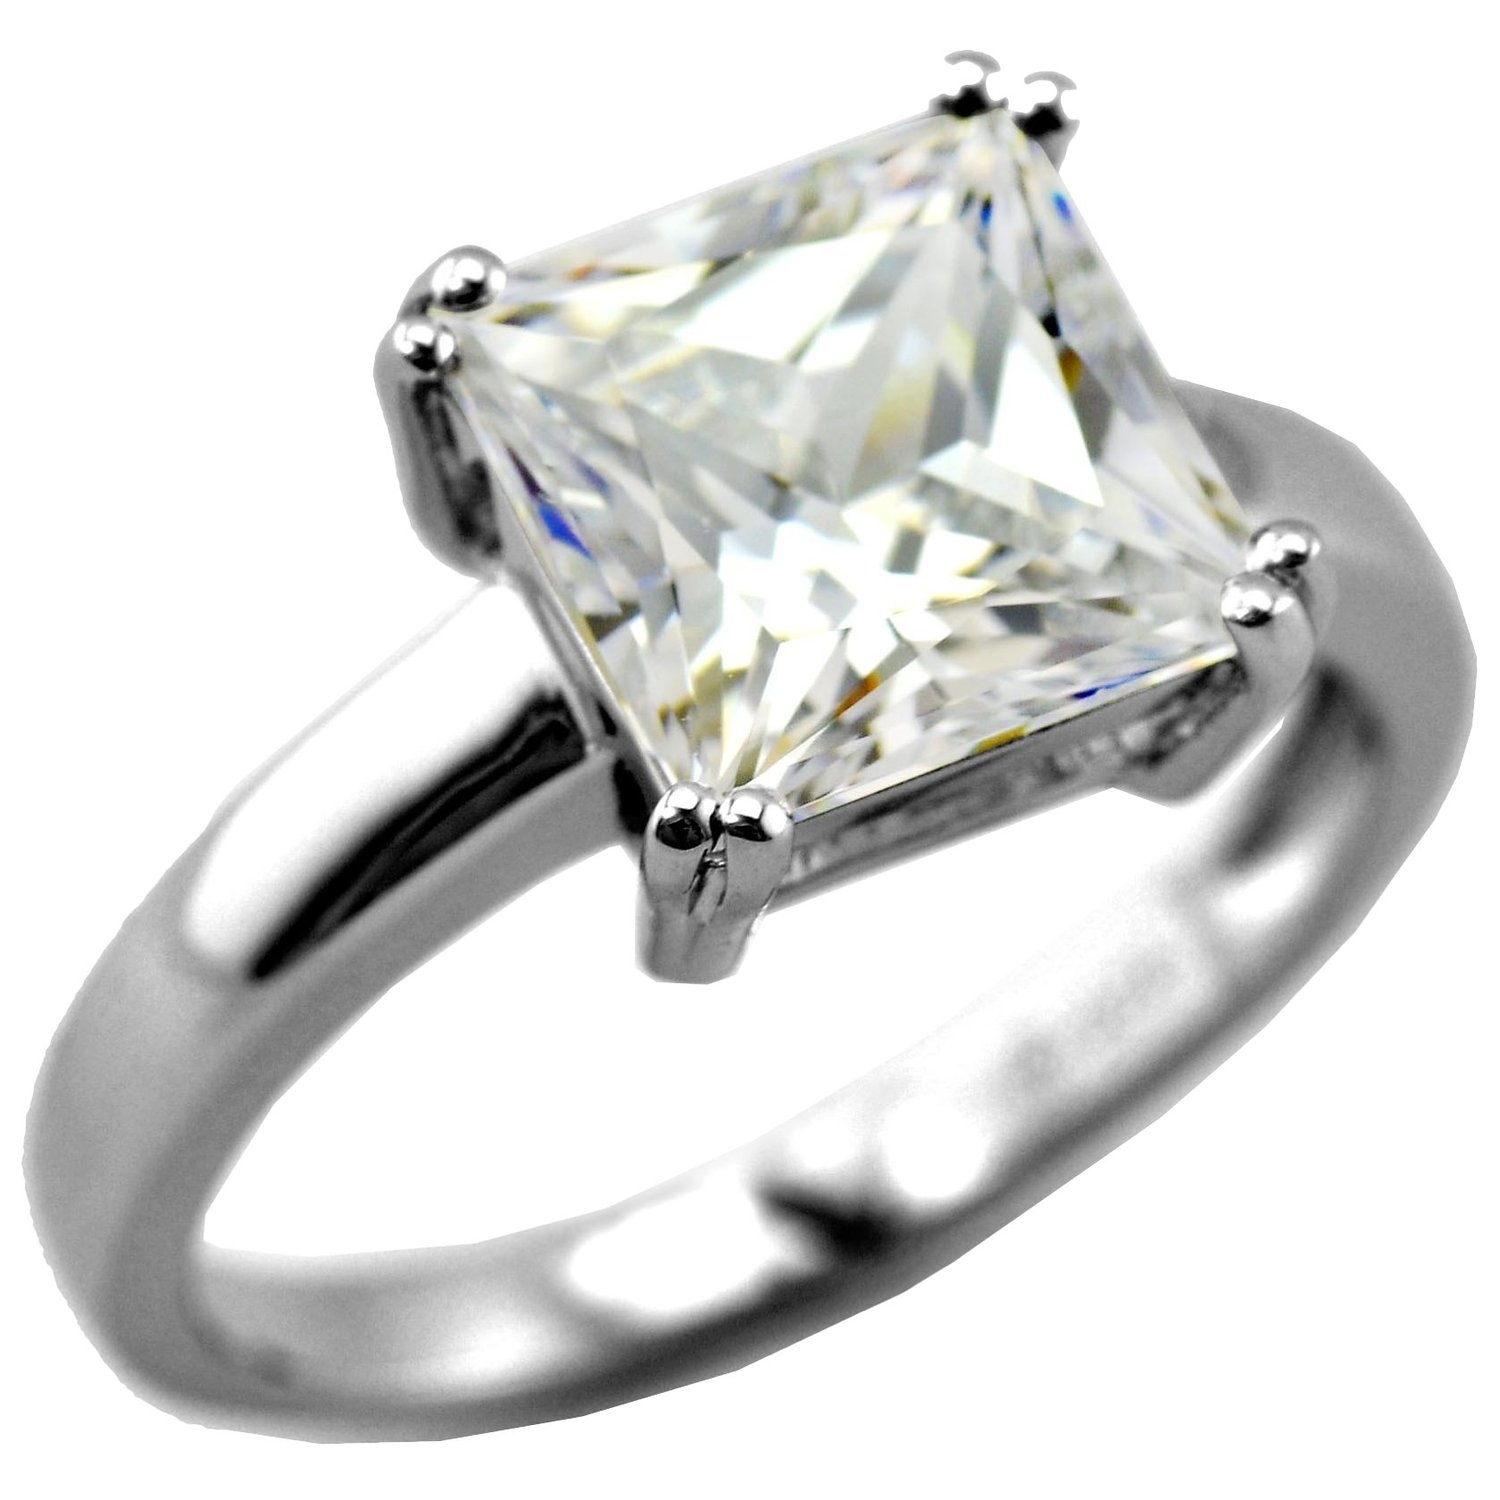 Amazon.com: princess cut solitaire ring with 3.67 carat brillianite. 925 sterling silver. comfort fit.: jewelry